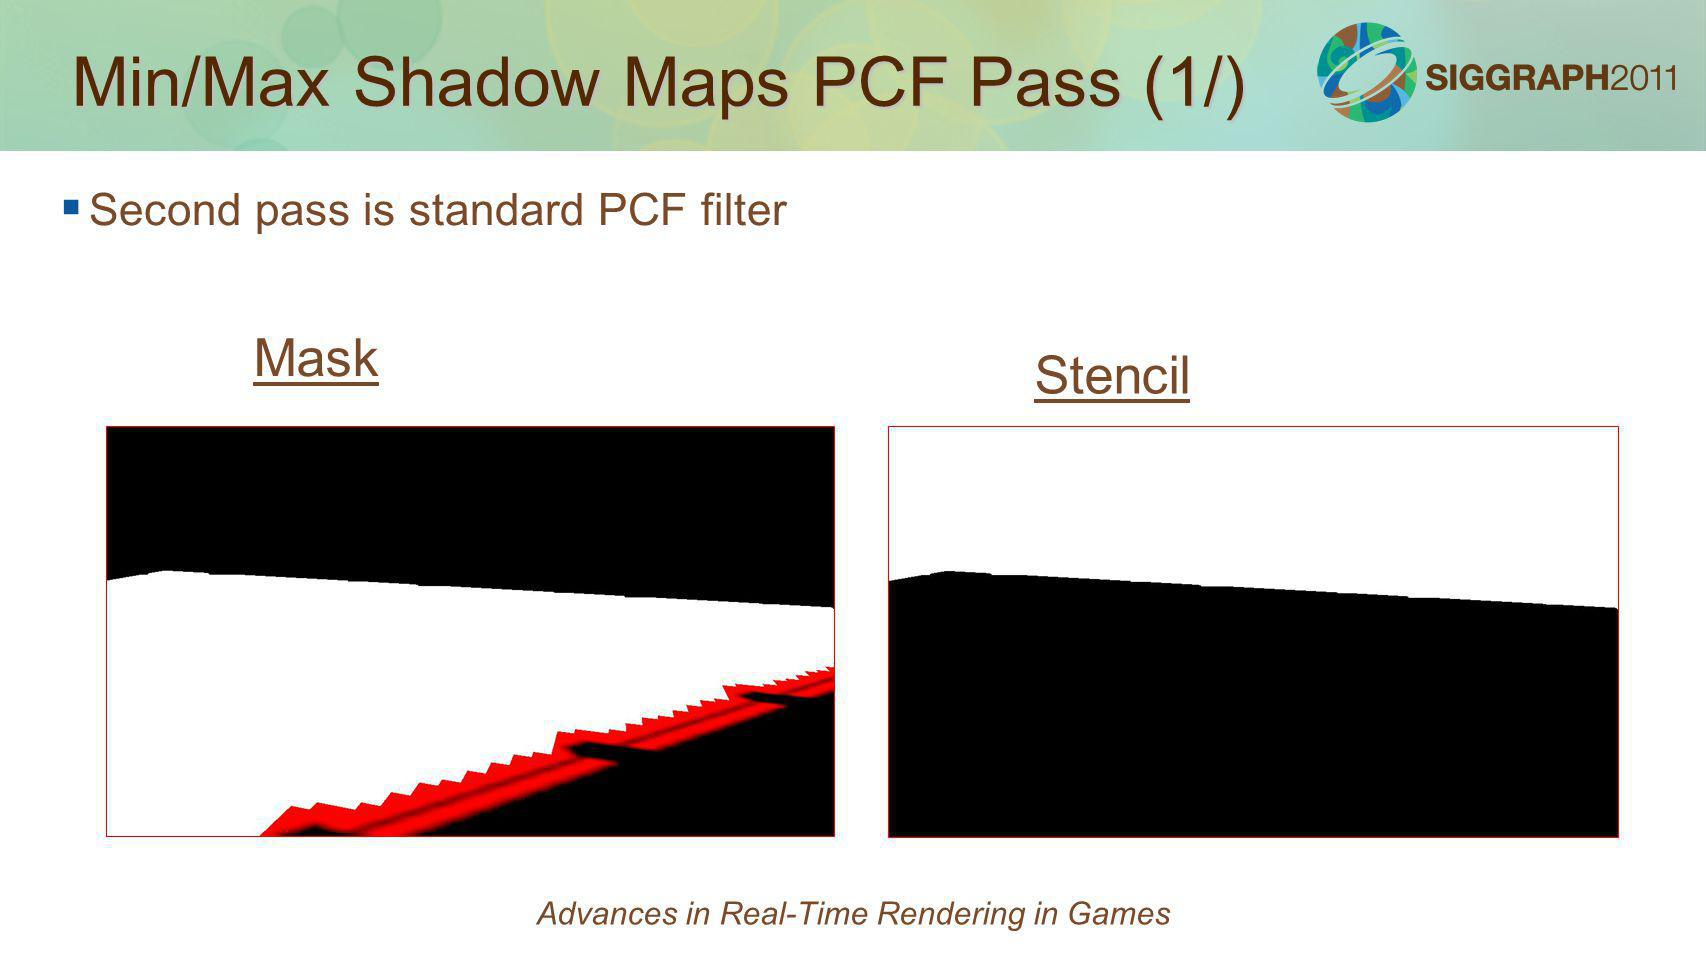 Min/Max Shadow Maps PCF Pass (1/) Second pass is standard PCF filter Mask Stencil Advances in Real-Time Rendering in Games